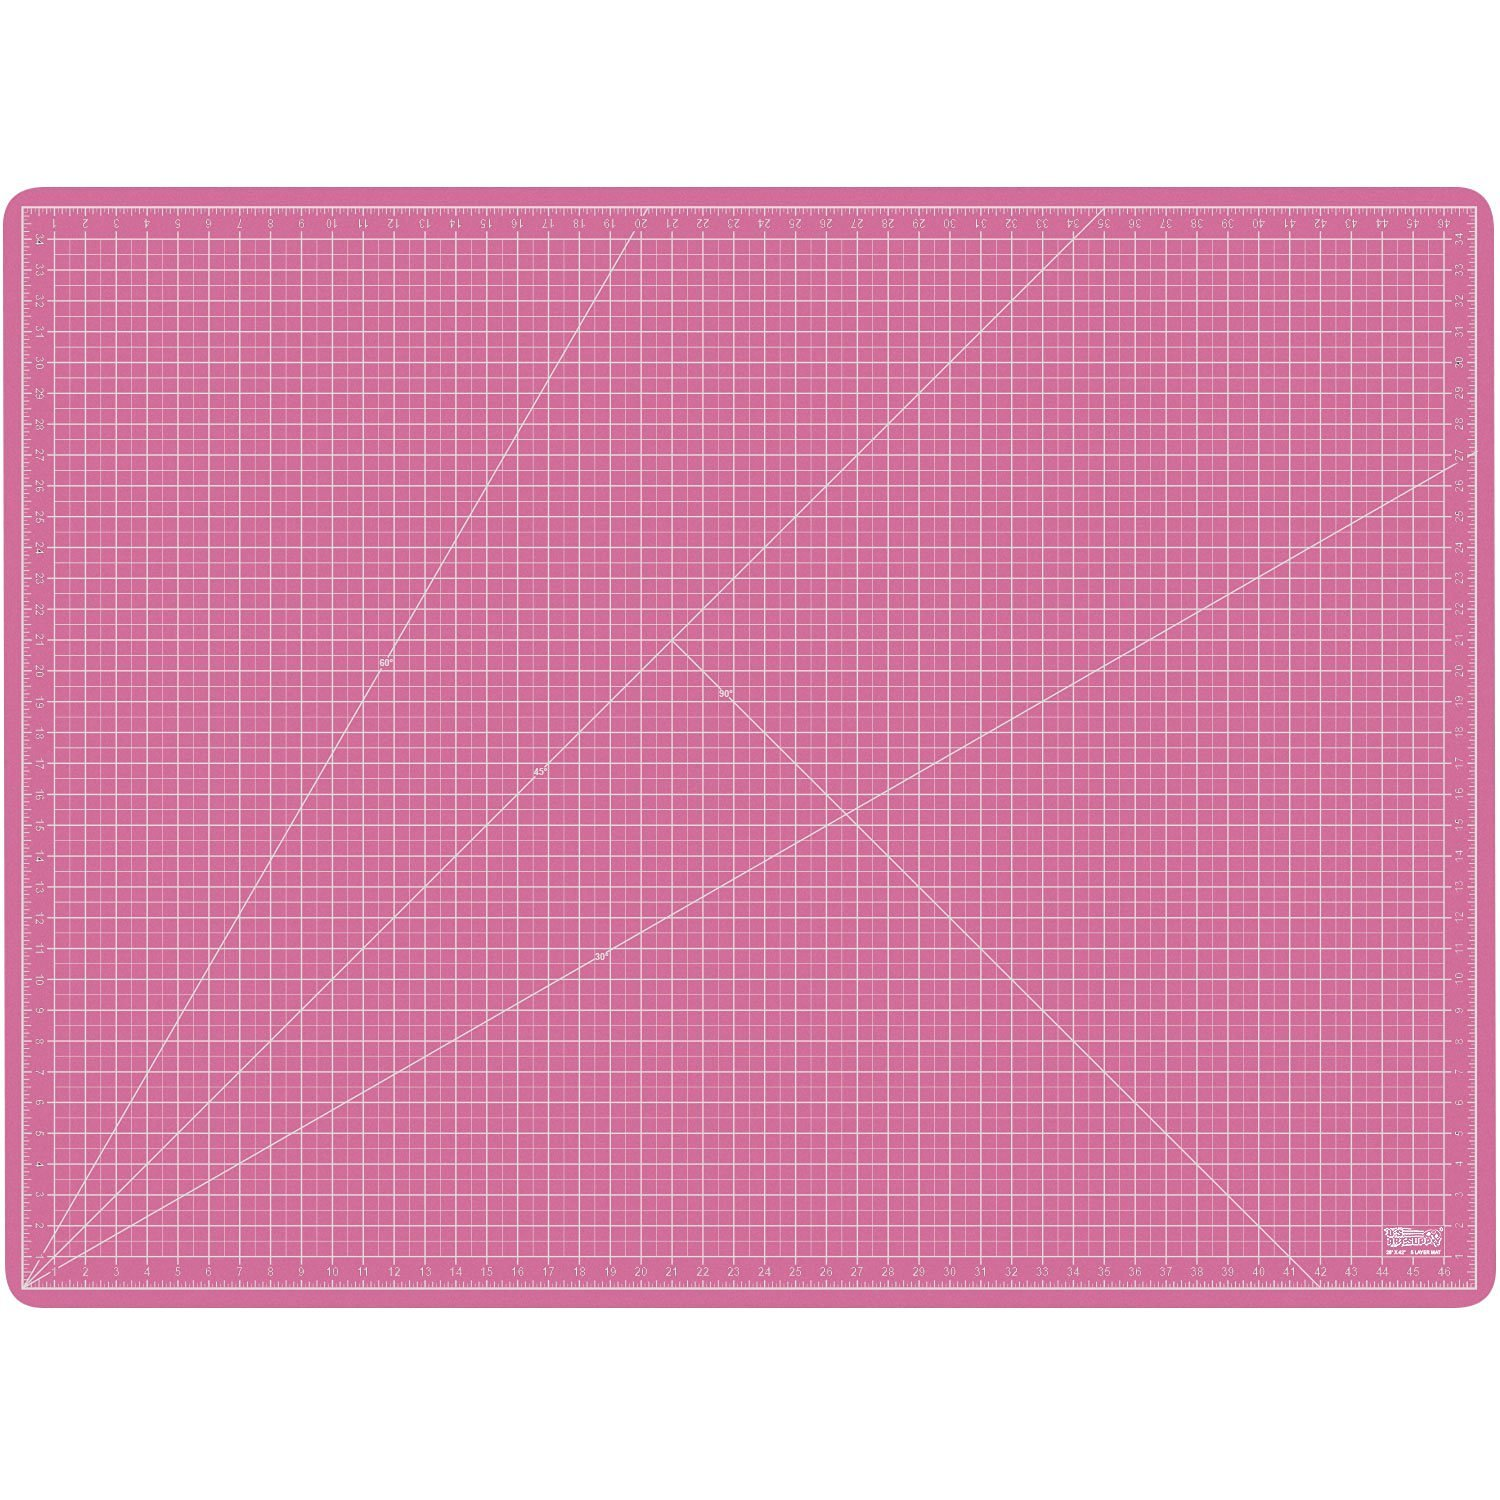 US Art Supply 36'' x 48'' PINK/BLUE Professional Self Healing 5-Ply Double Sided Durable Non-Slip PVC Cutting Mat Great for Scrapbooking, Quilting, Sewing and all Arts & Crafts Projects